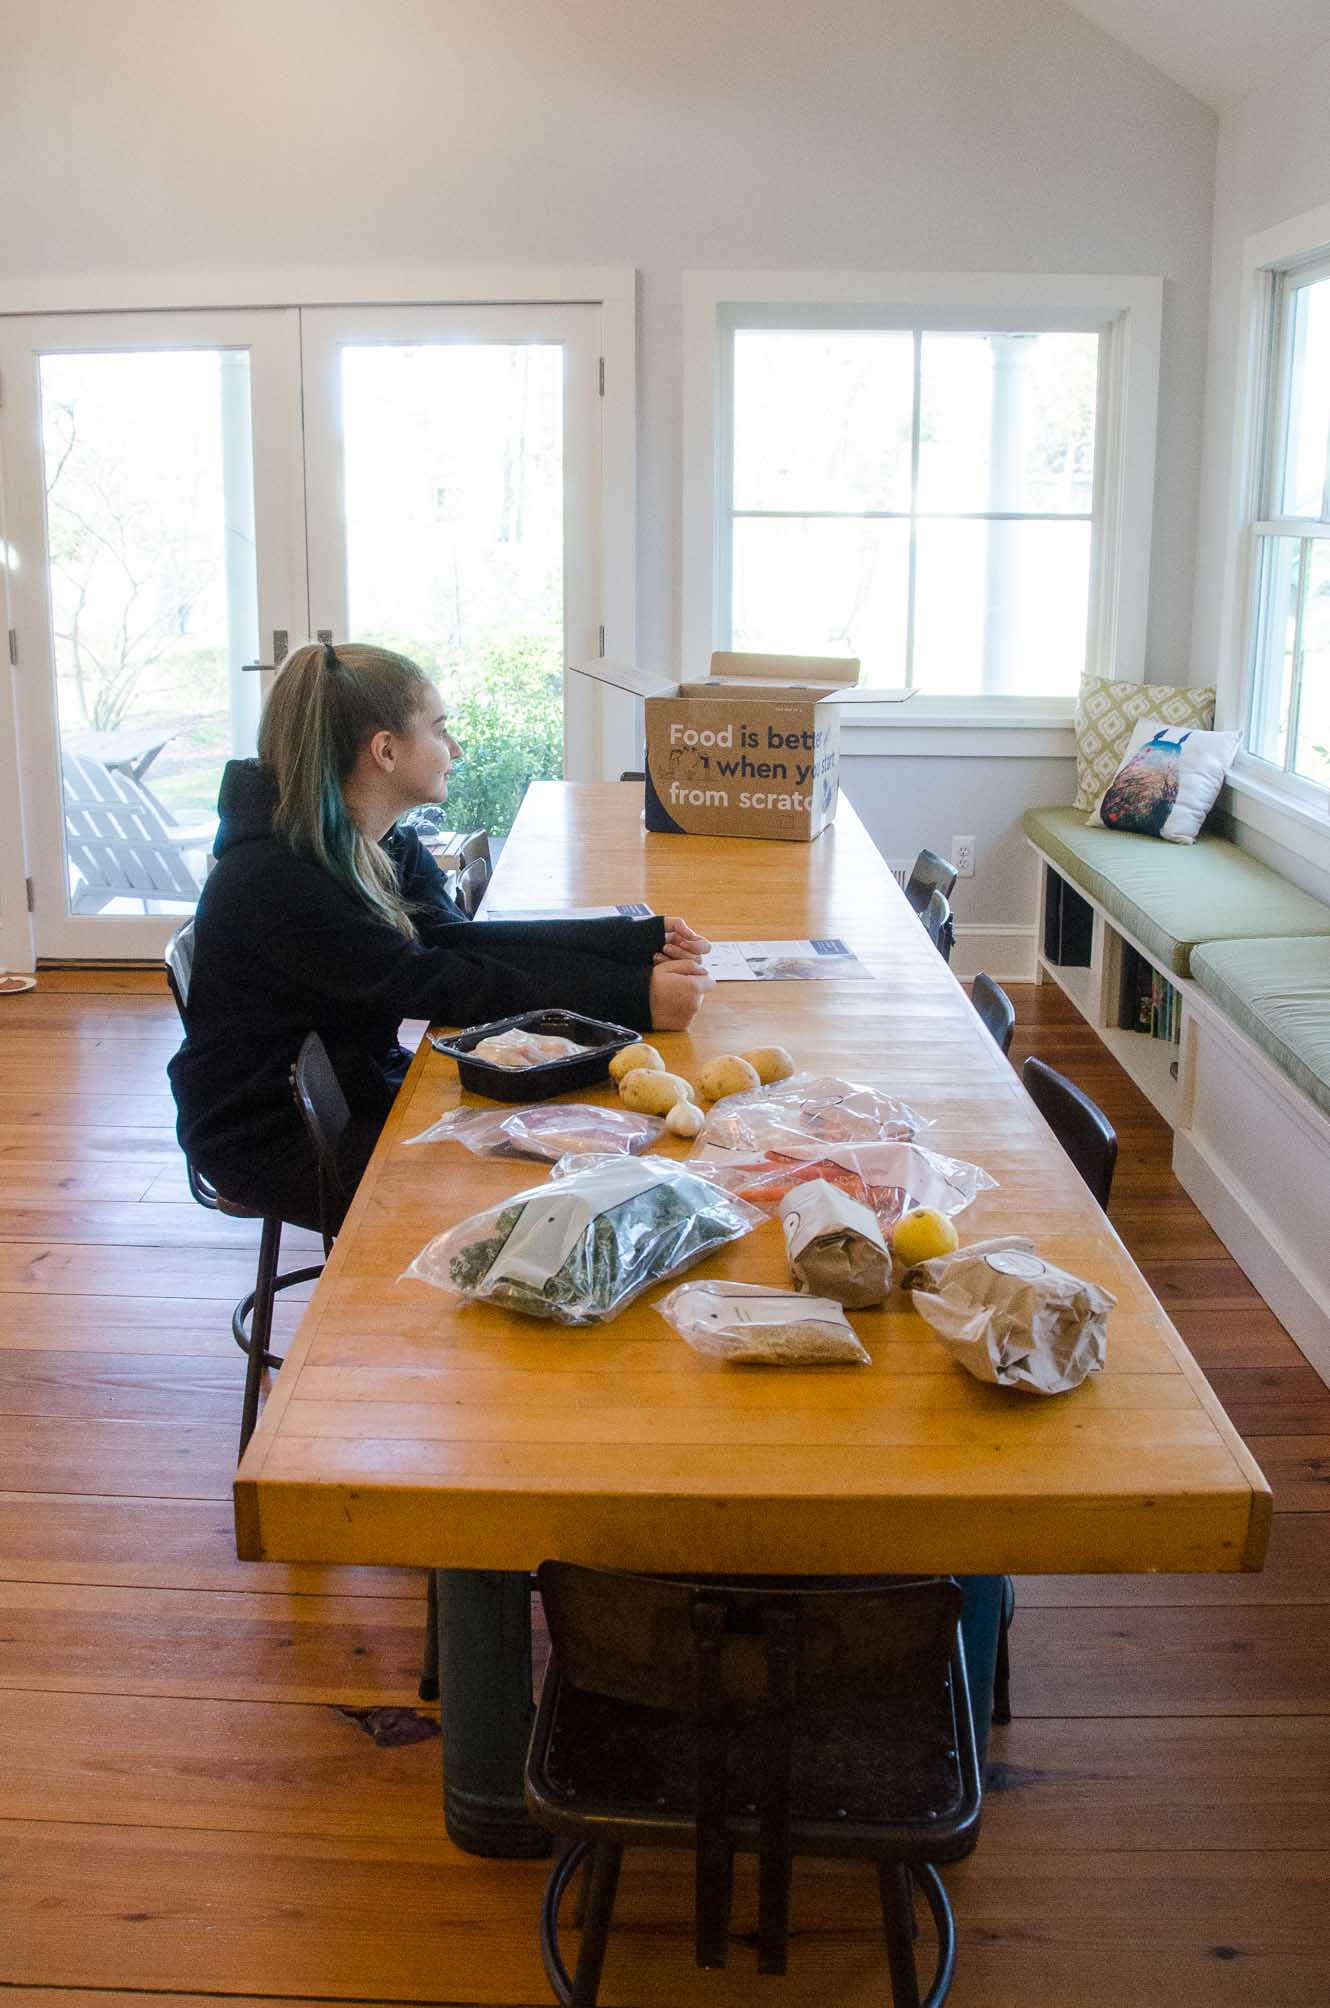 Blue Apron Delivery and Unboxing | Umami Girl